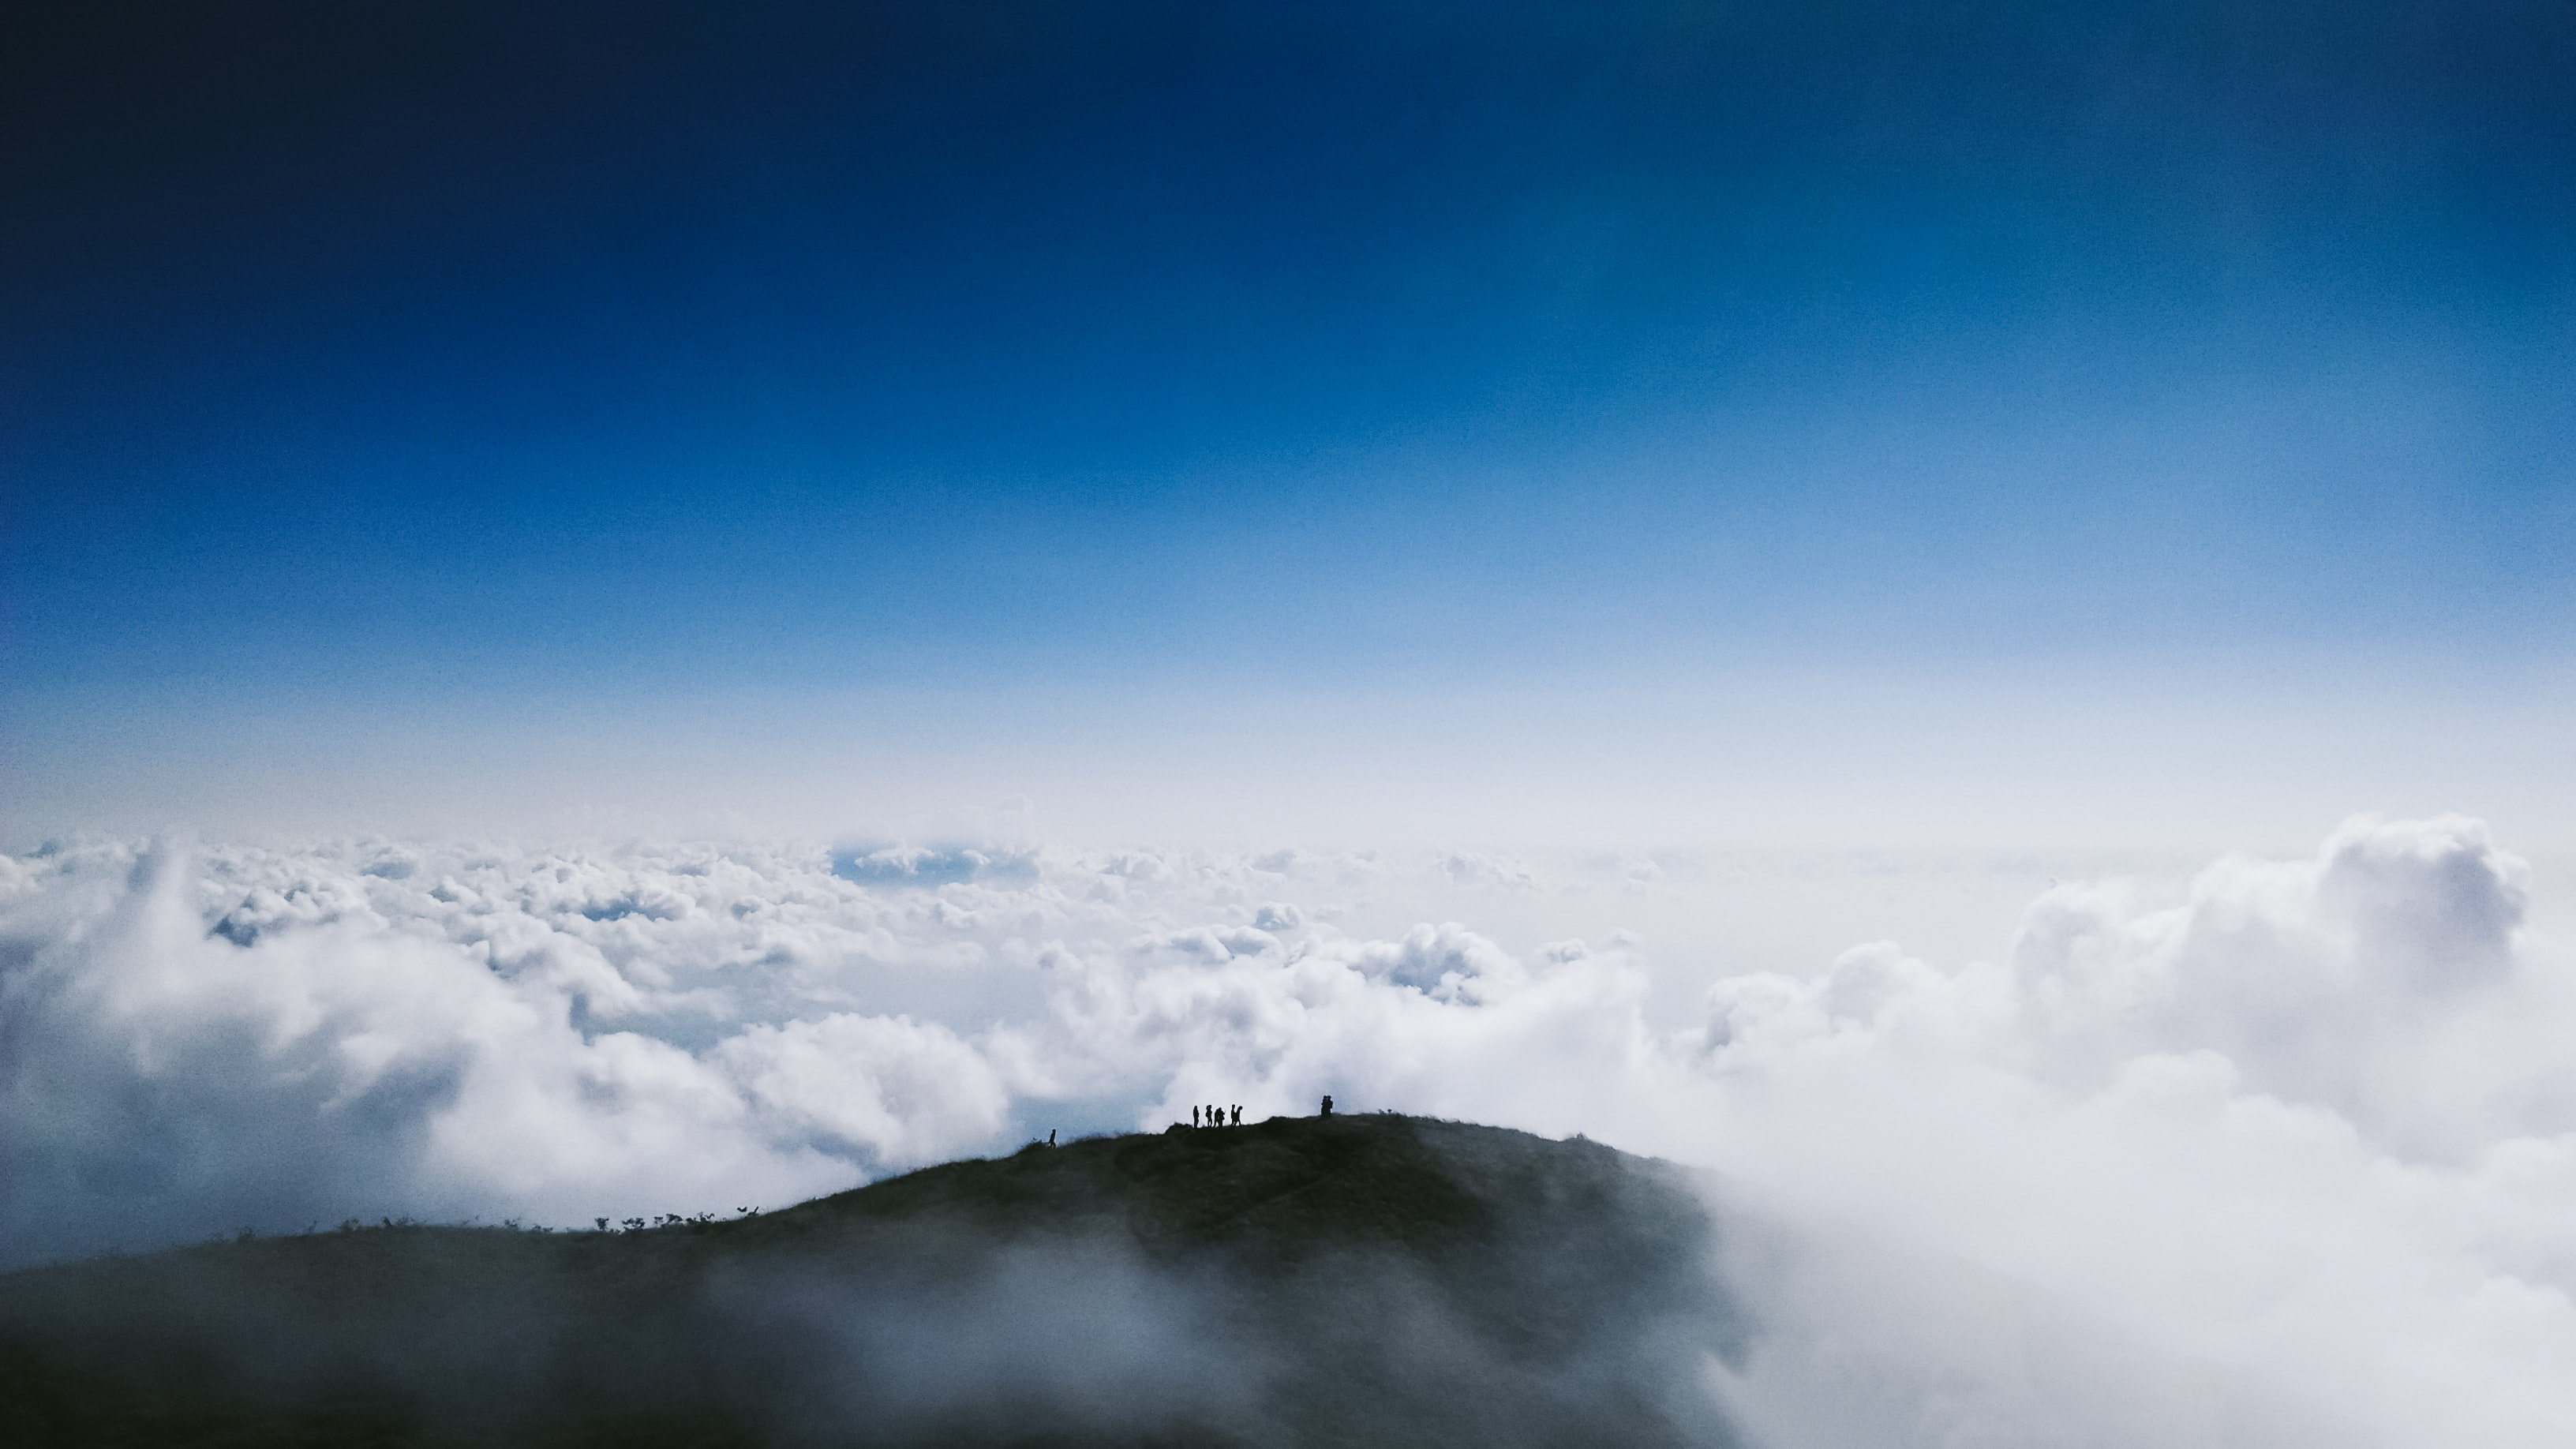 aerial photo of mountain reaching clouds